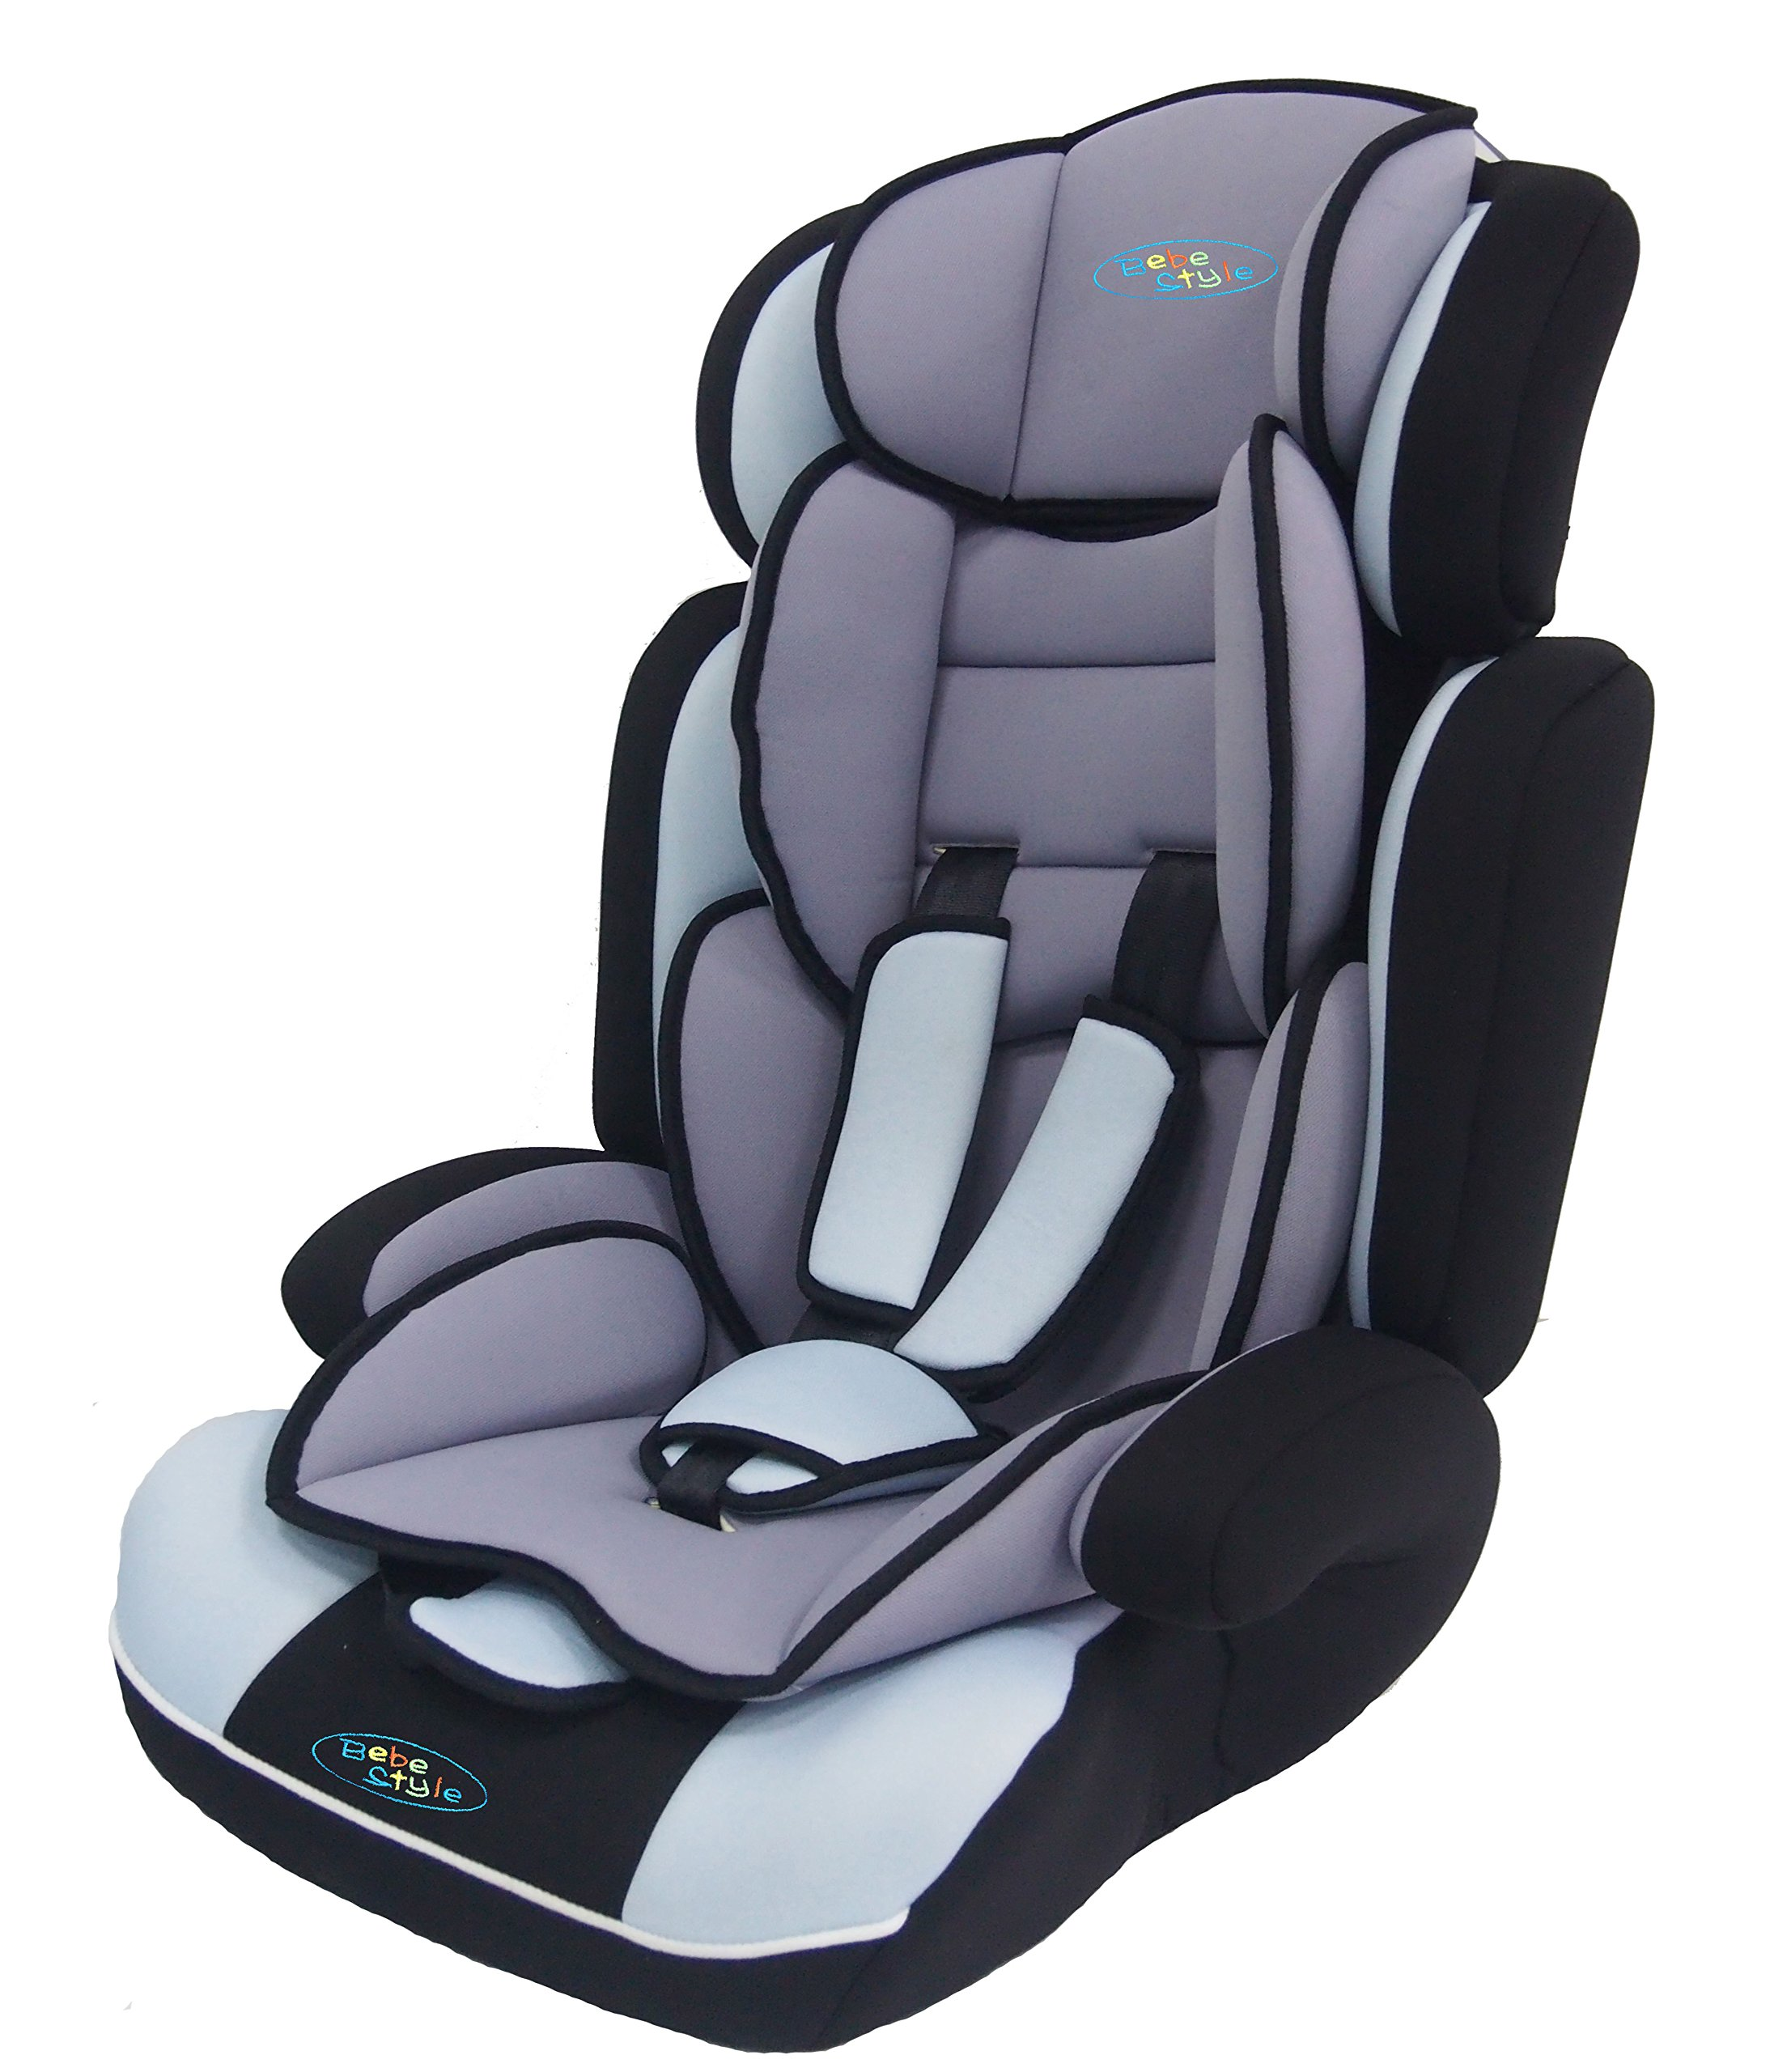 Bebe Style Convertiblle 1/2/3 Combination Car Seat and Booster Seat - Blue  From 9 months to 12 years old, one size fits all (9-36kg) Converts to booster seat.  Very Thick Padding Adjustable height of headrest and shoulder straps for the growing needs of the child 1